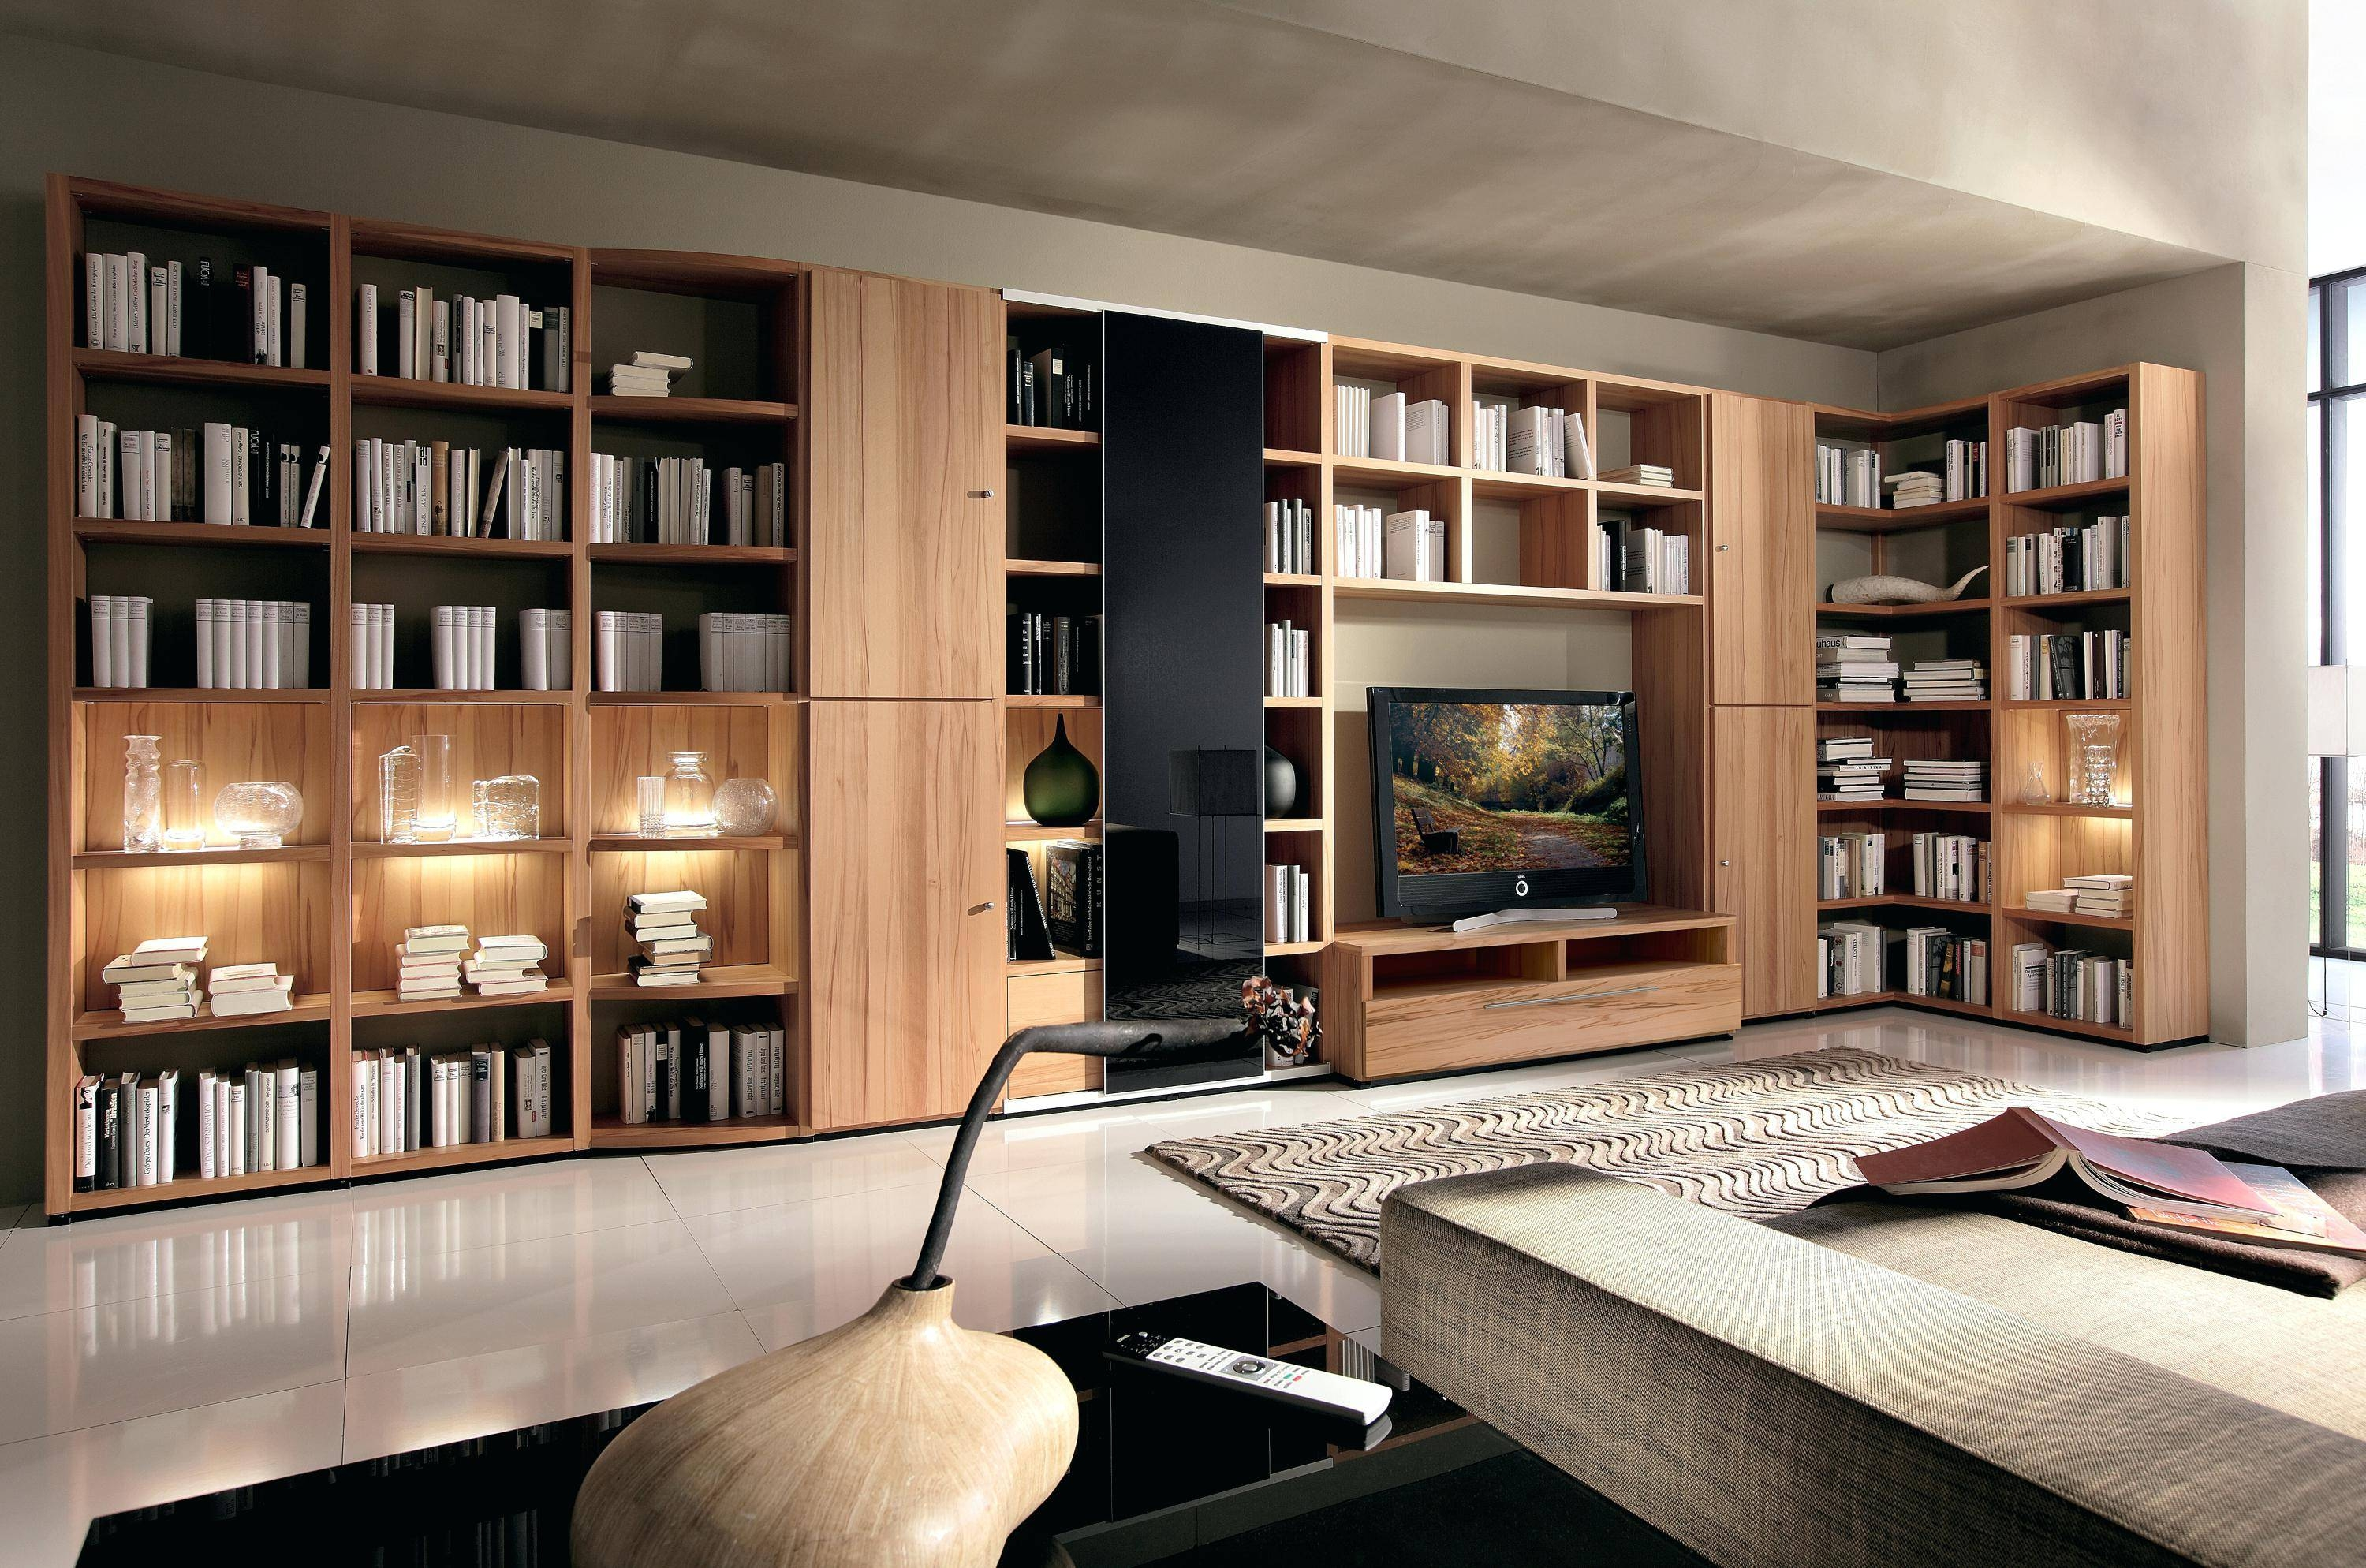 end tip media of make bookcases elegant and center units console beautiful stand entertainment stands bookcase tables tv to cluster hot a